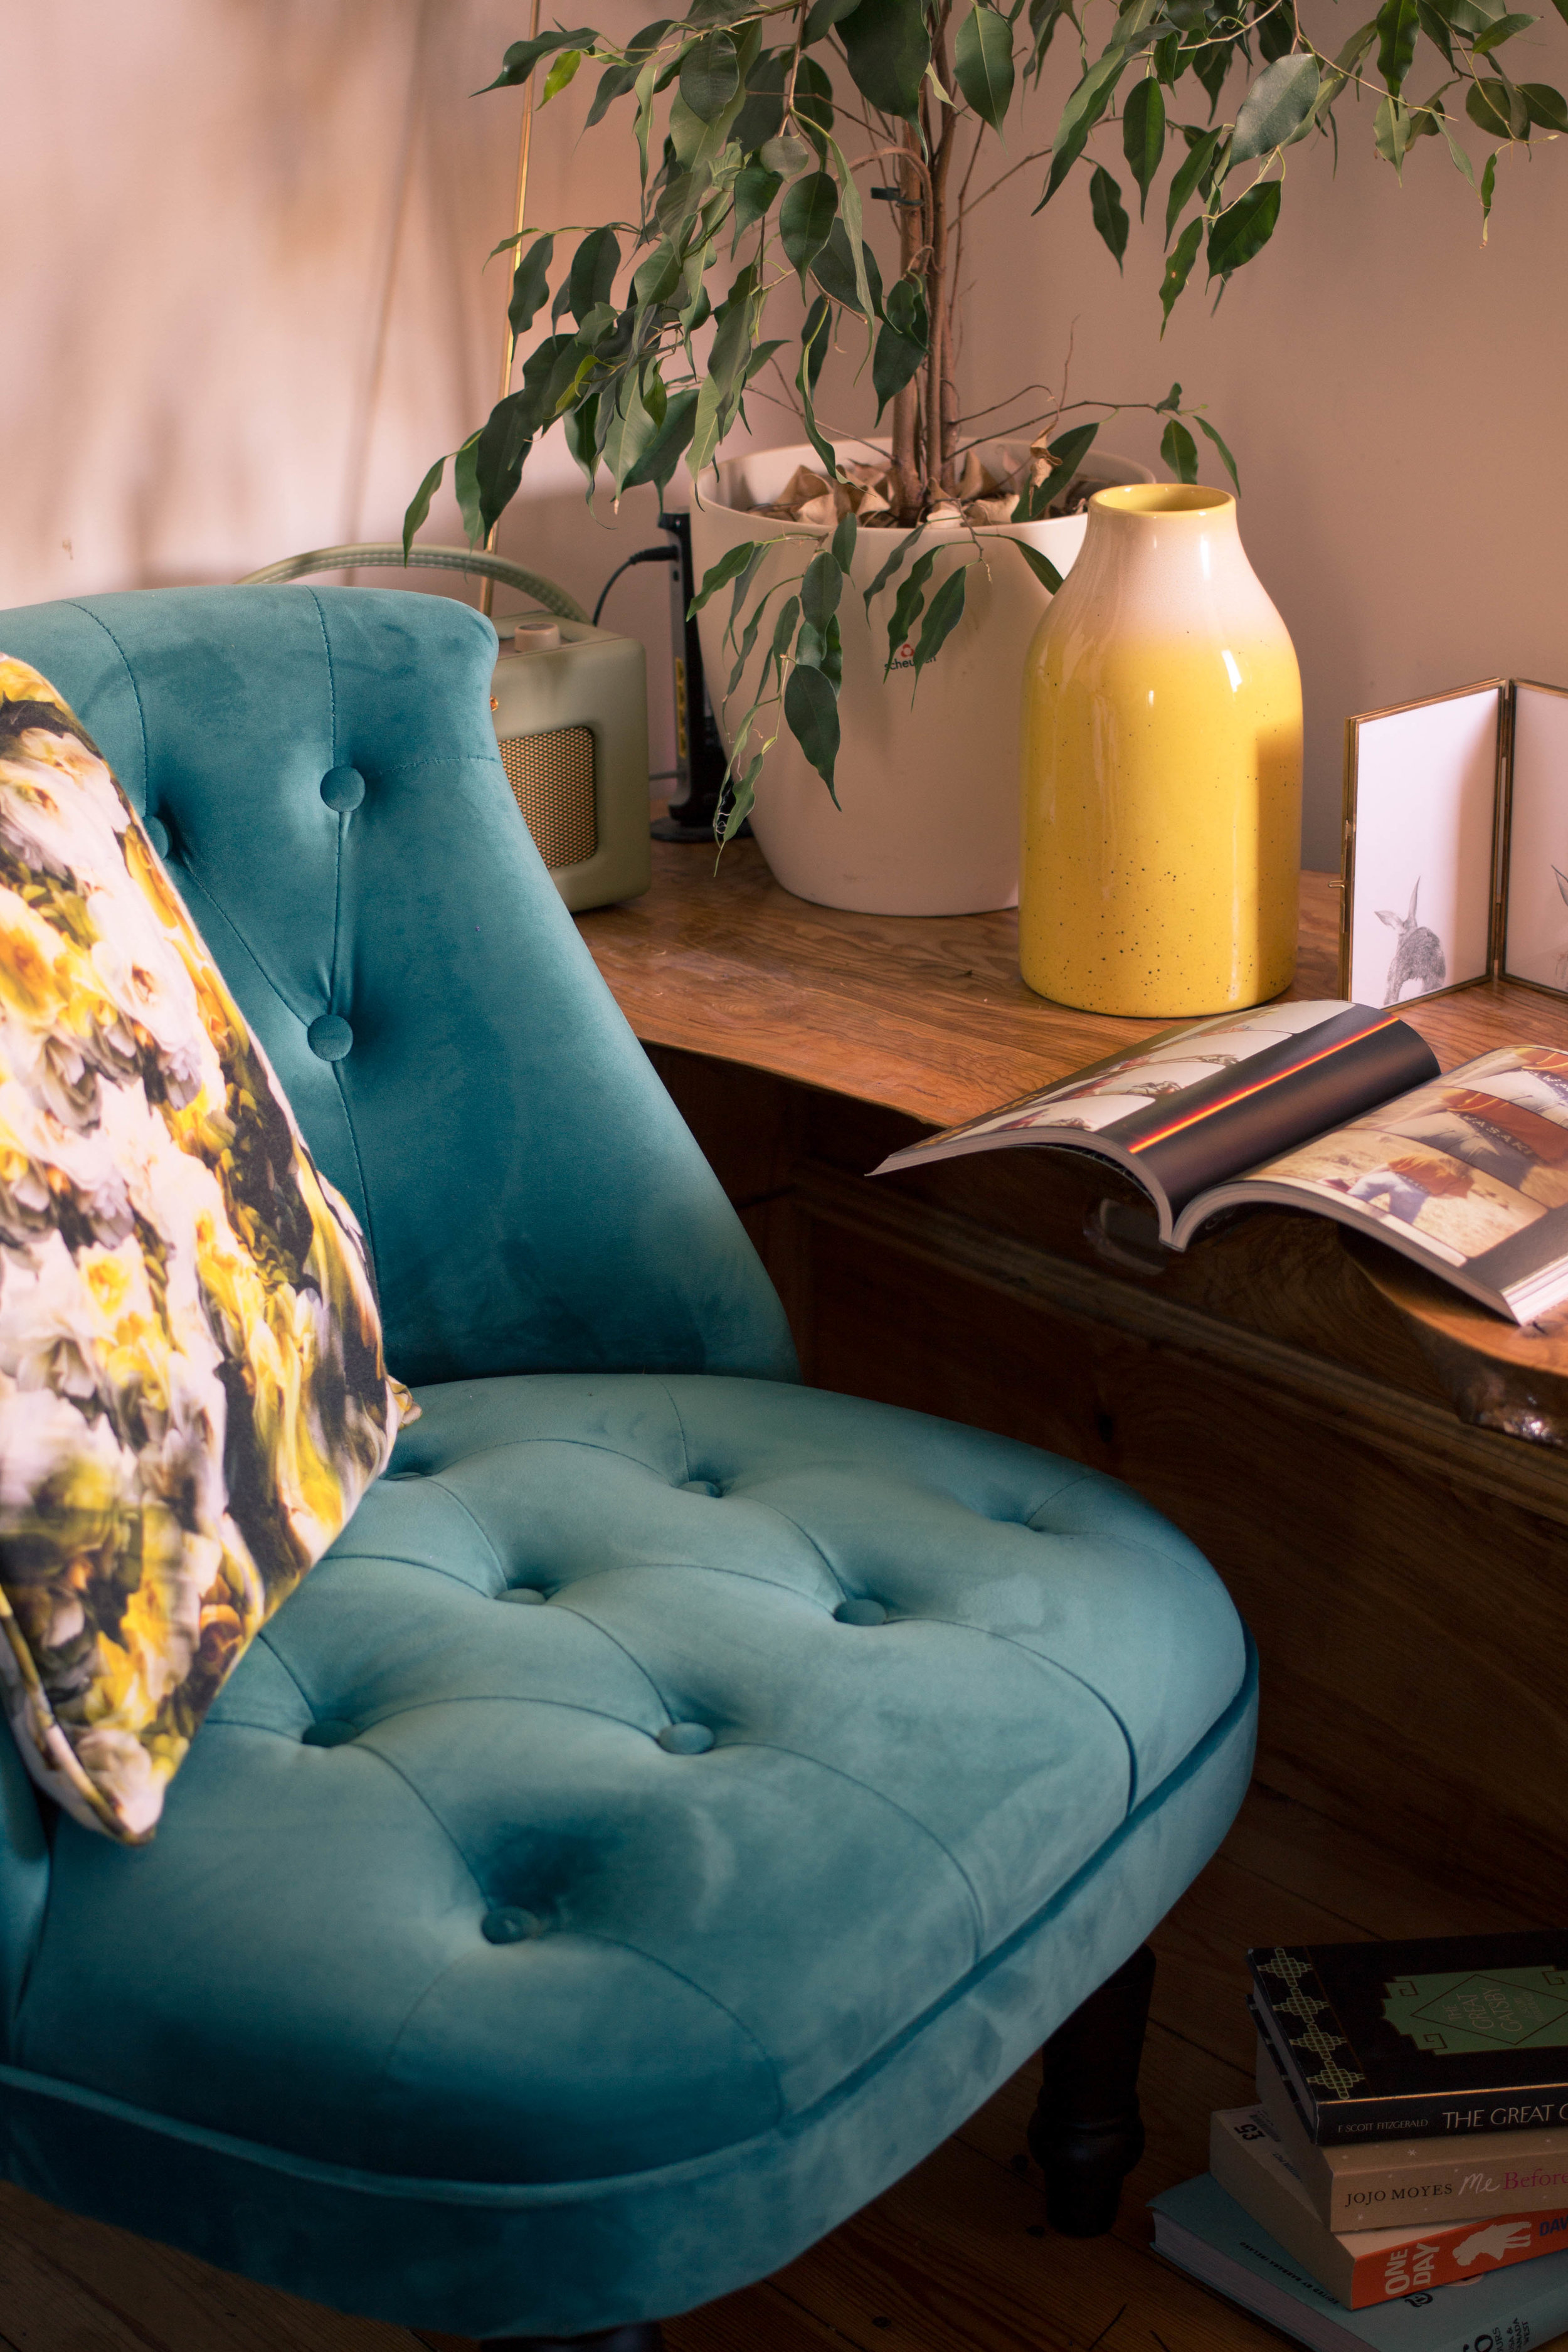 Styling-a-cosy-corner-rush-and-teal-6.jpg